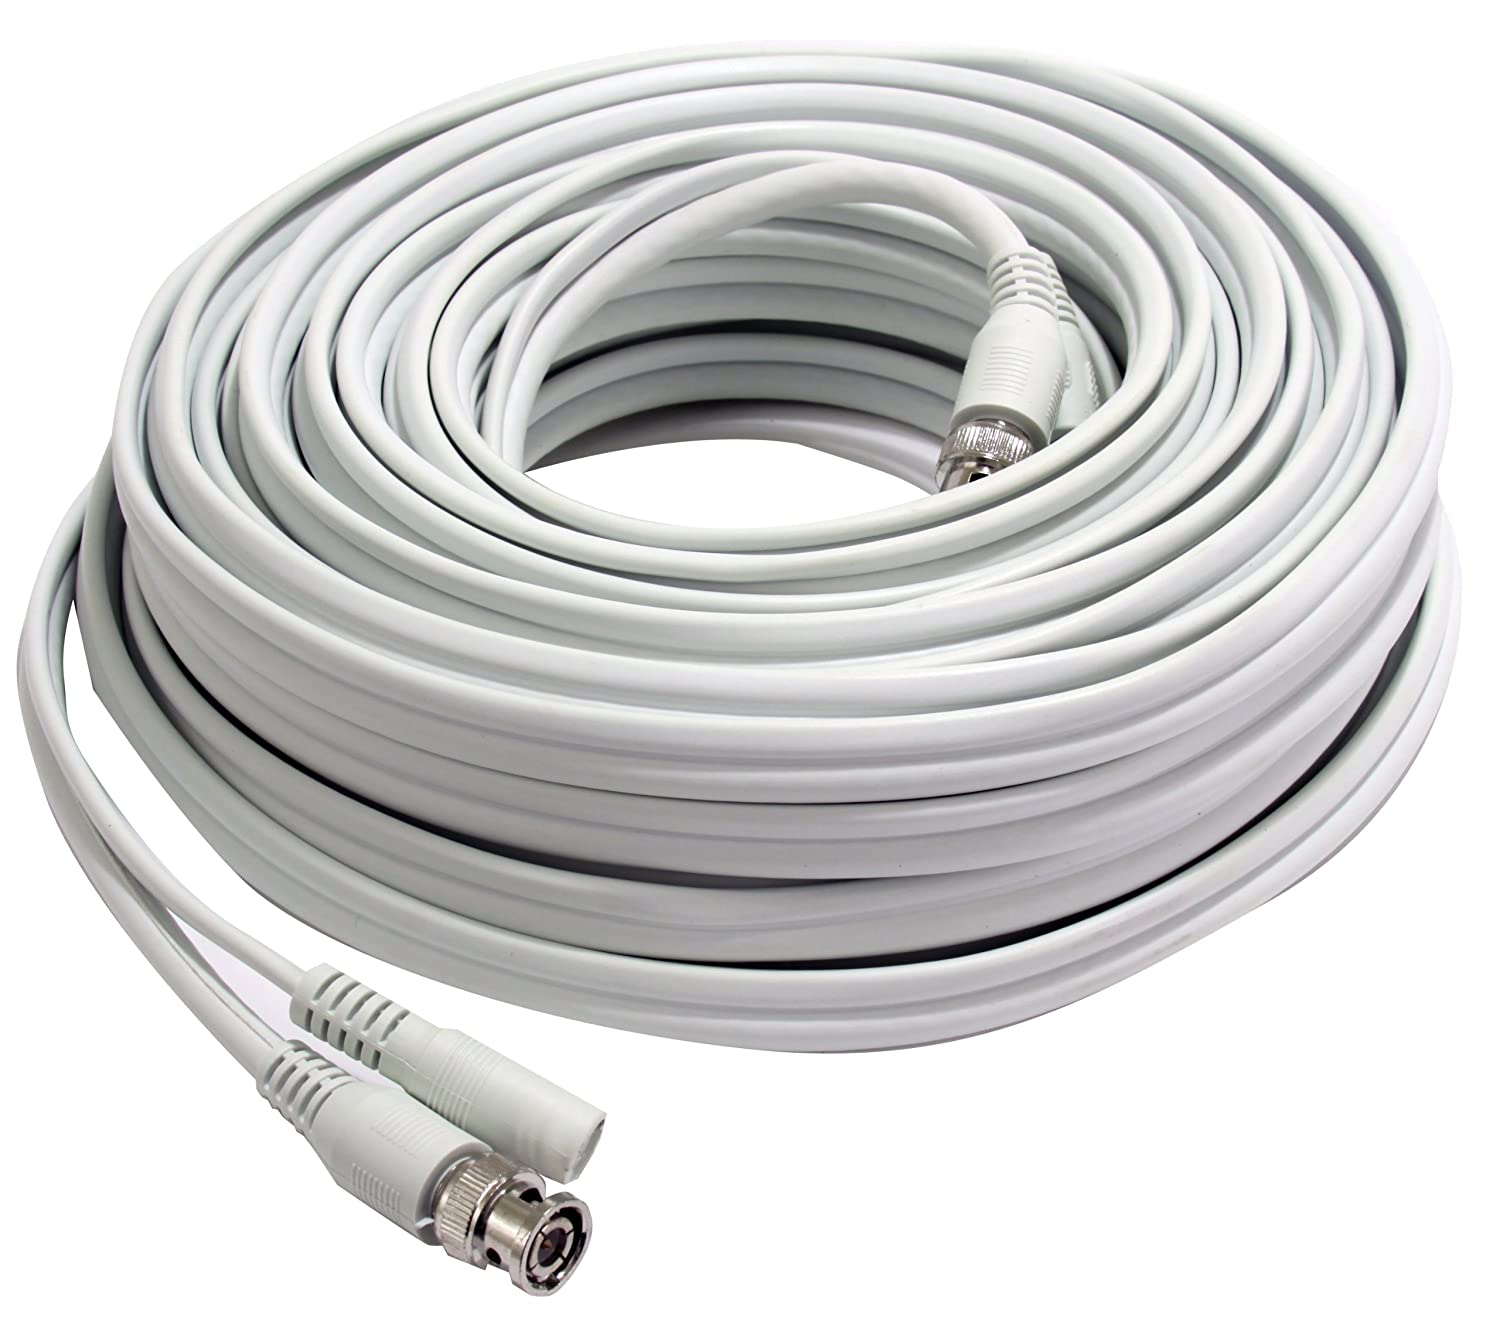 Frist Alert BNC-50 RG59 Coax Video and DC Power Cable, 50-Feet ...